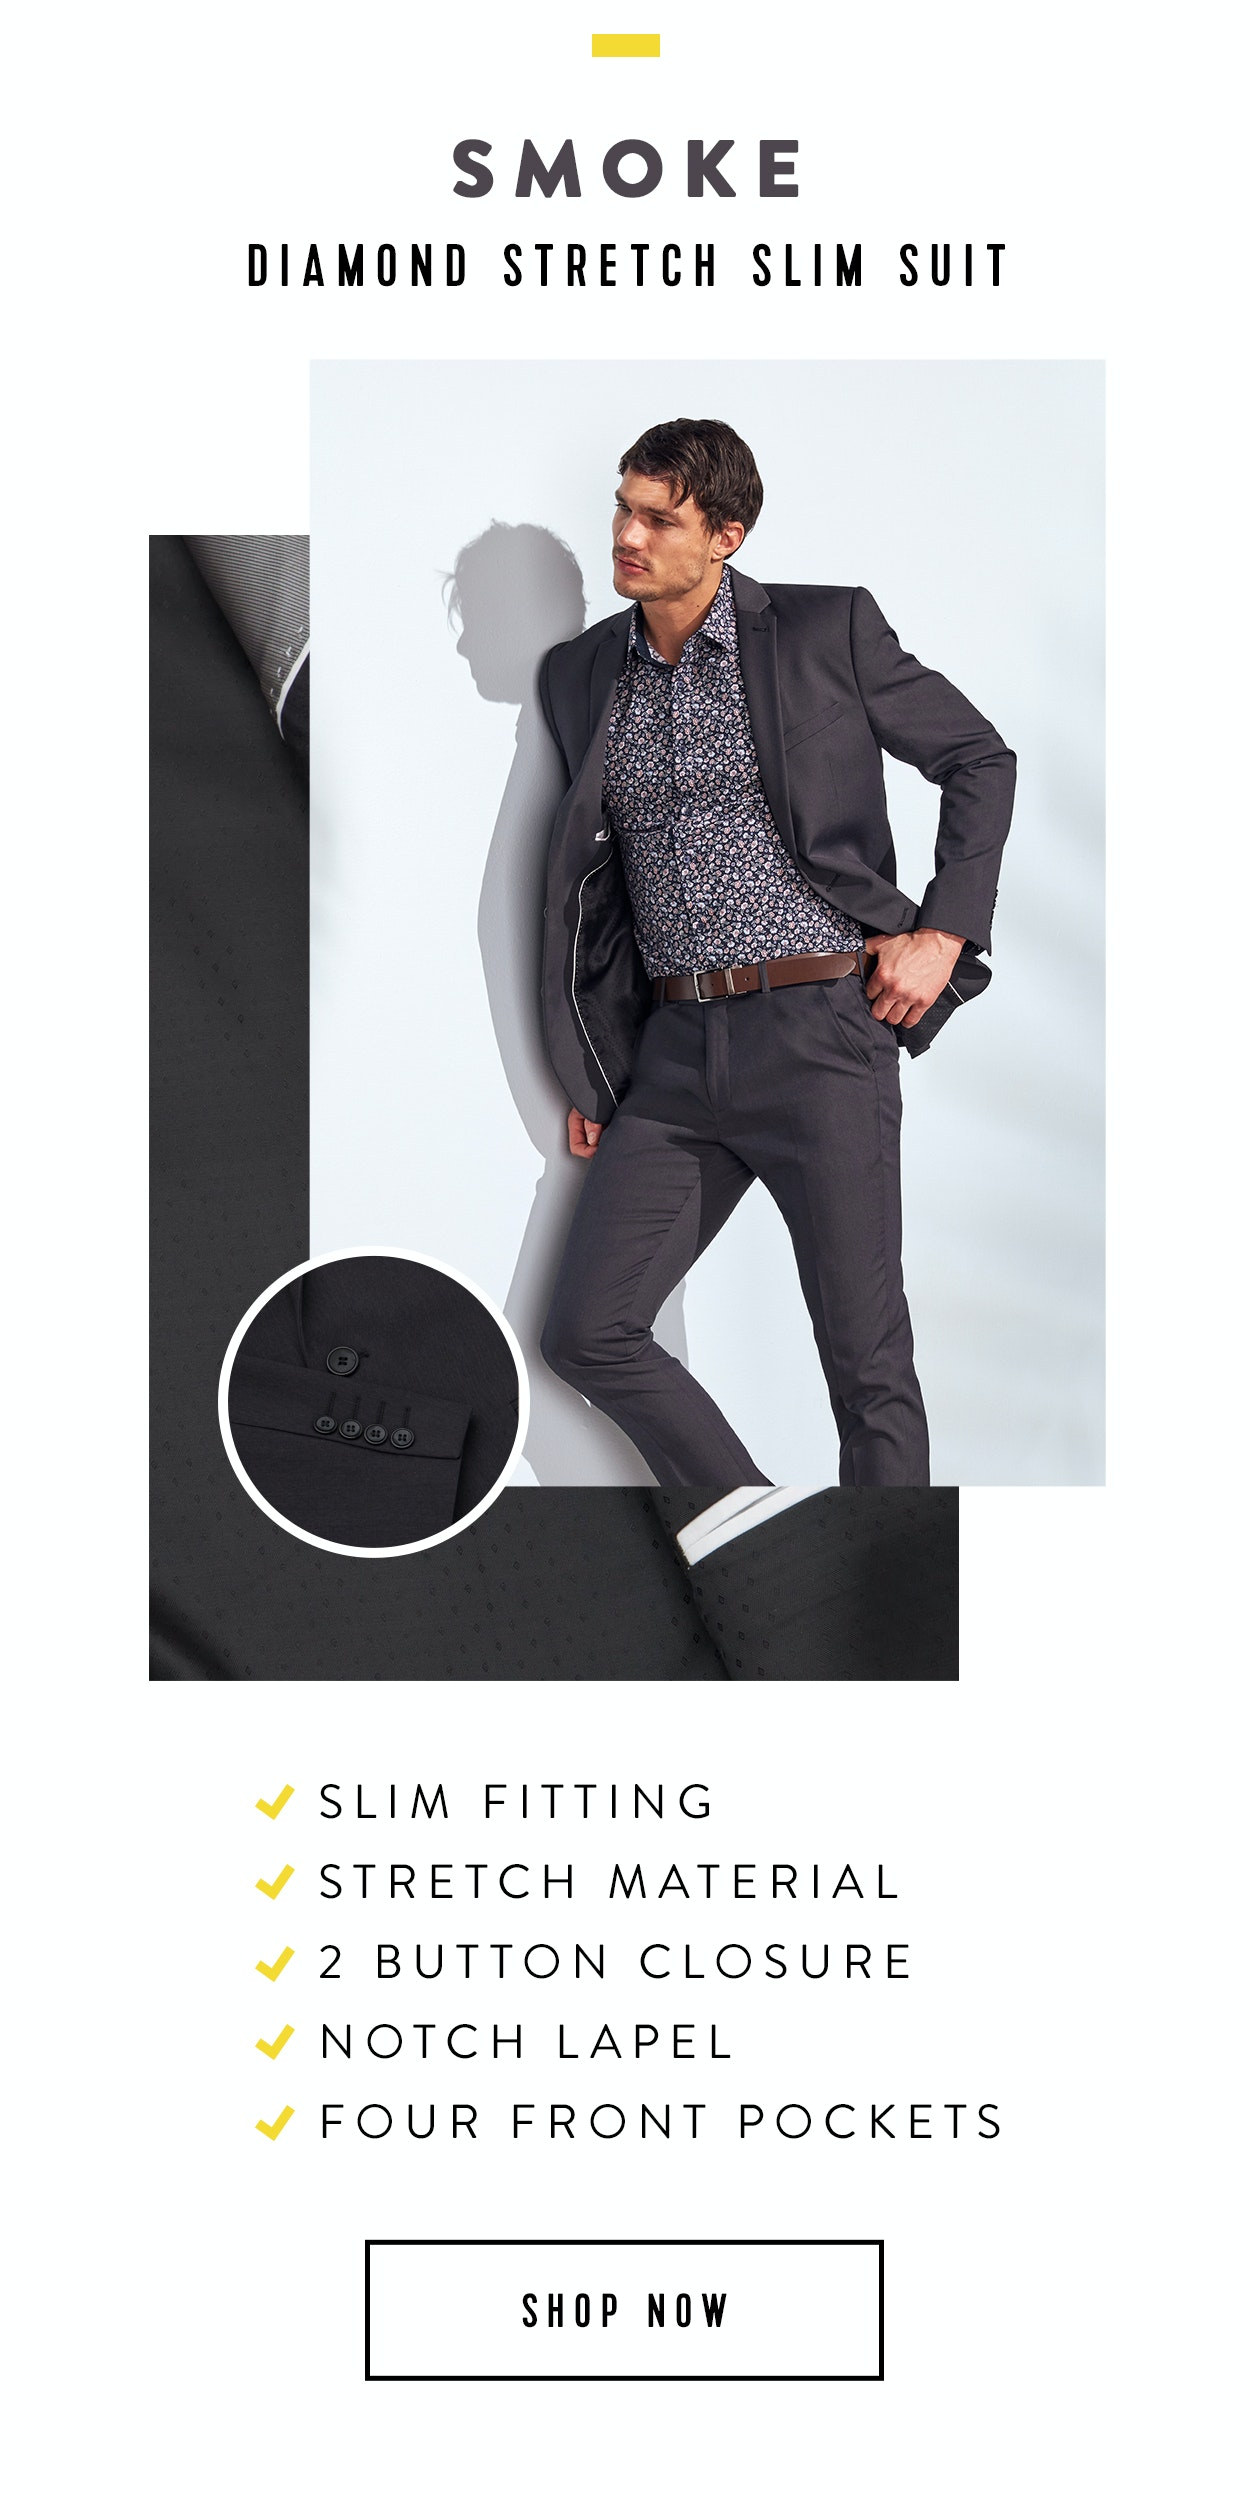 Shop Diamond Stretch Slim Suit Smoke